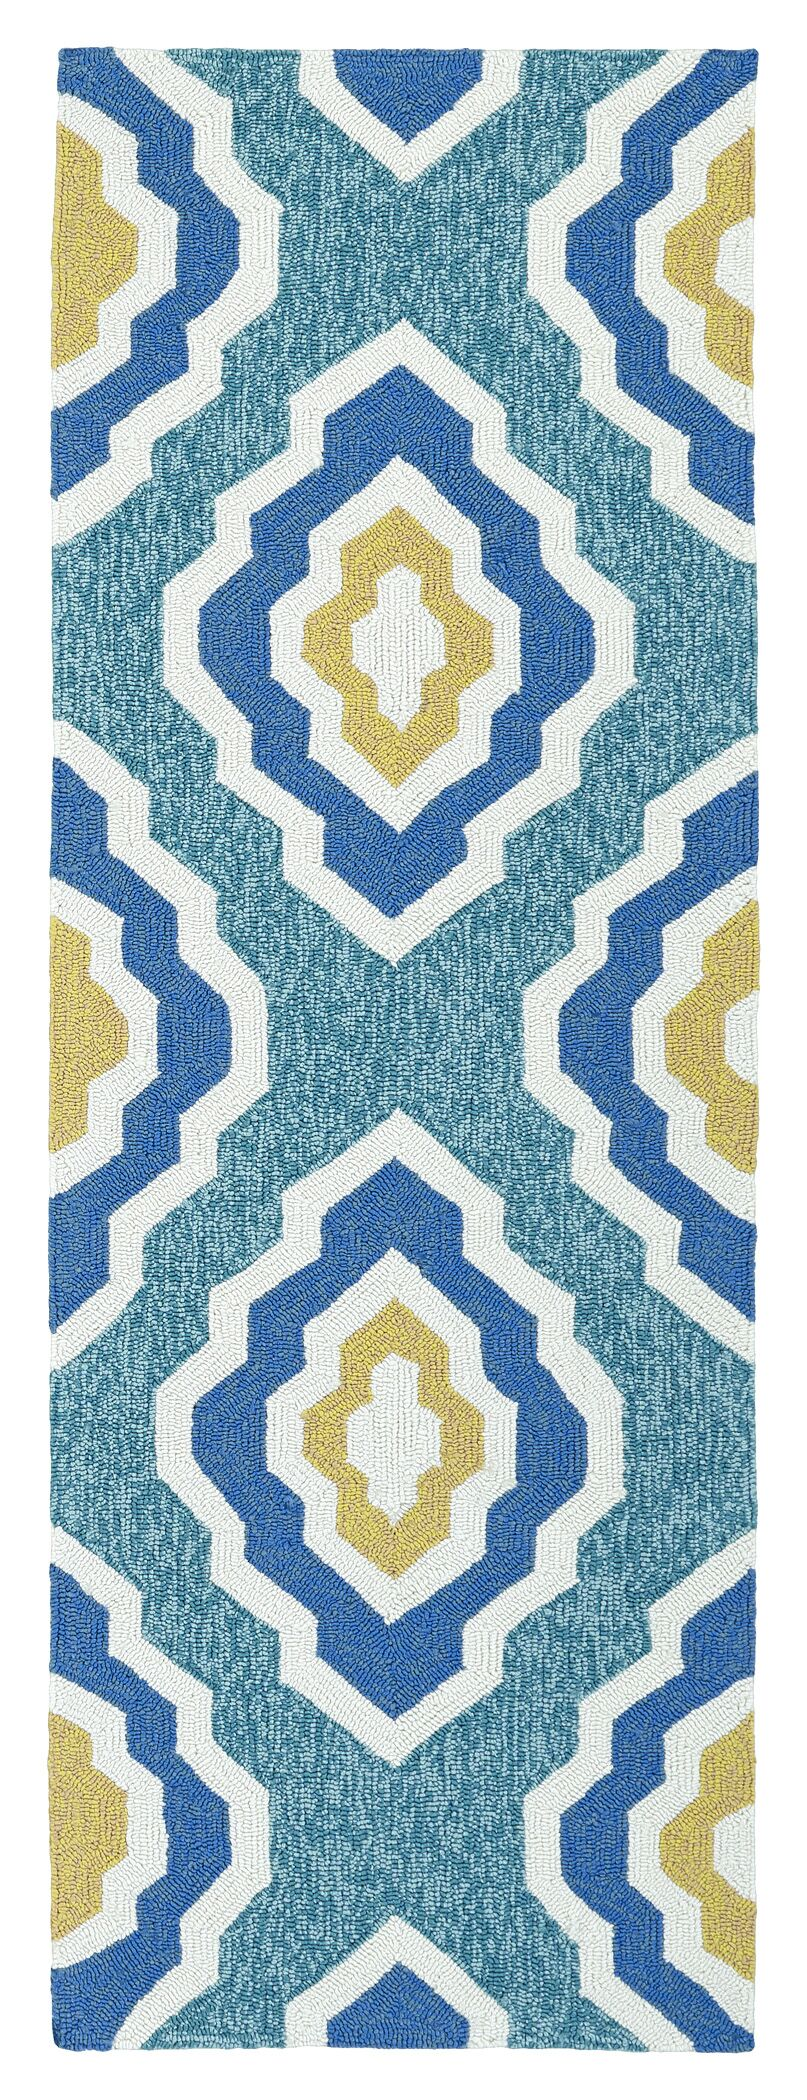 Escape Hand-Tufted Blue Indoor/Outdoor Area Rug Rug Size: Rectangle 5' x 7'6